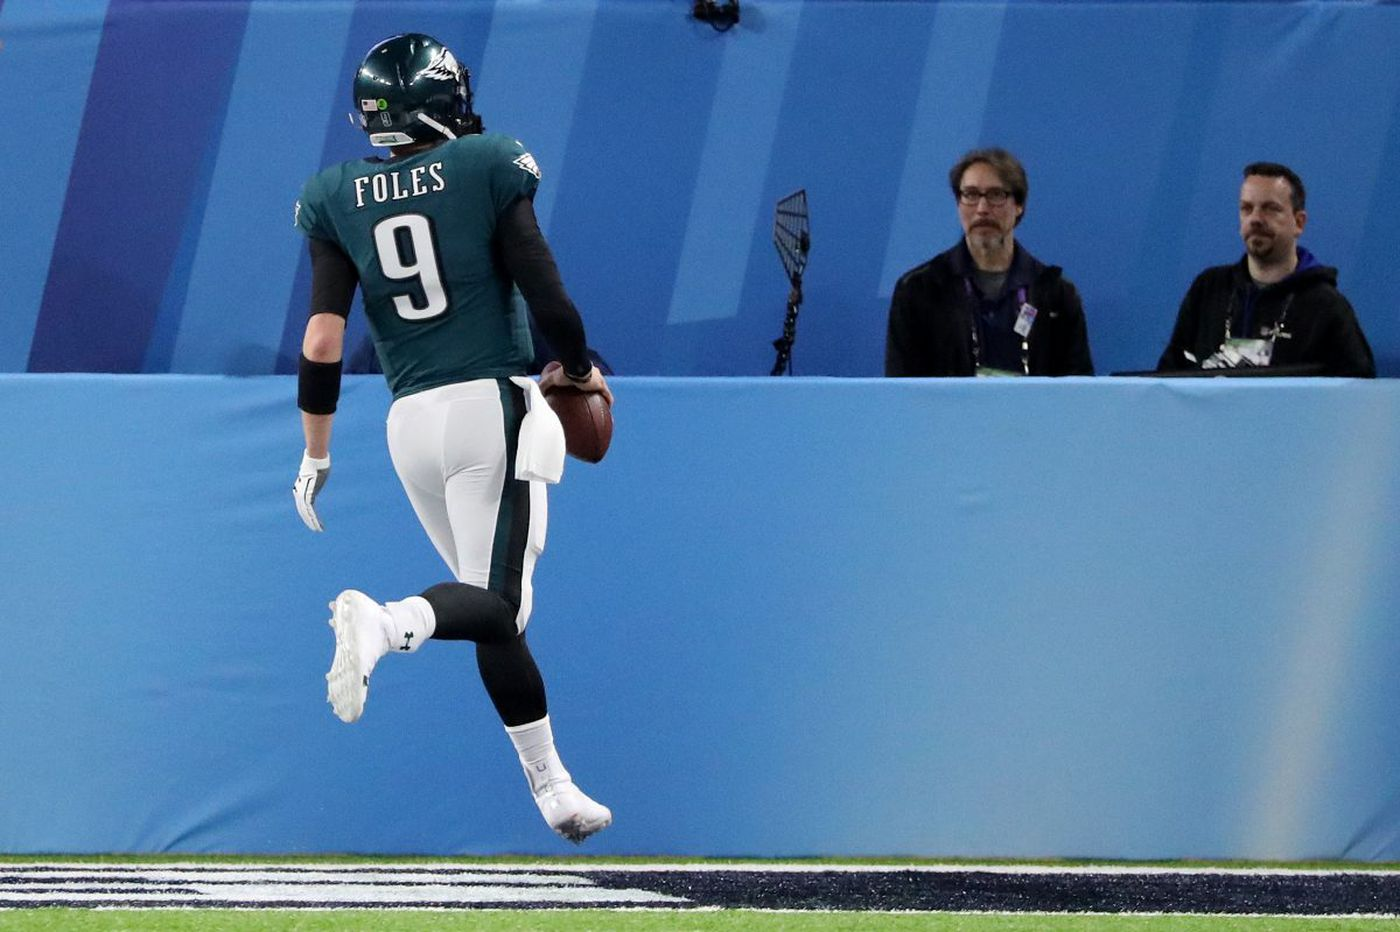 Video: Eagles' Super Bowl trick play ends with Nick Foles catching a touchdown